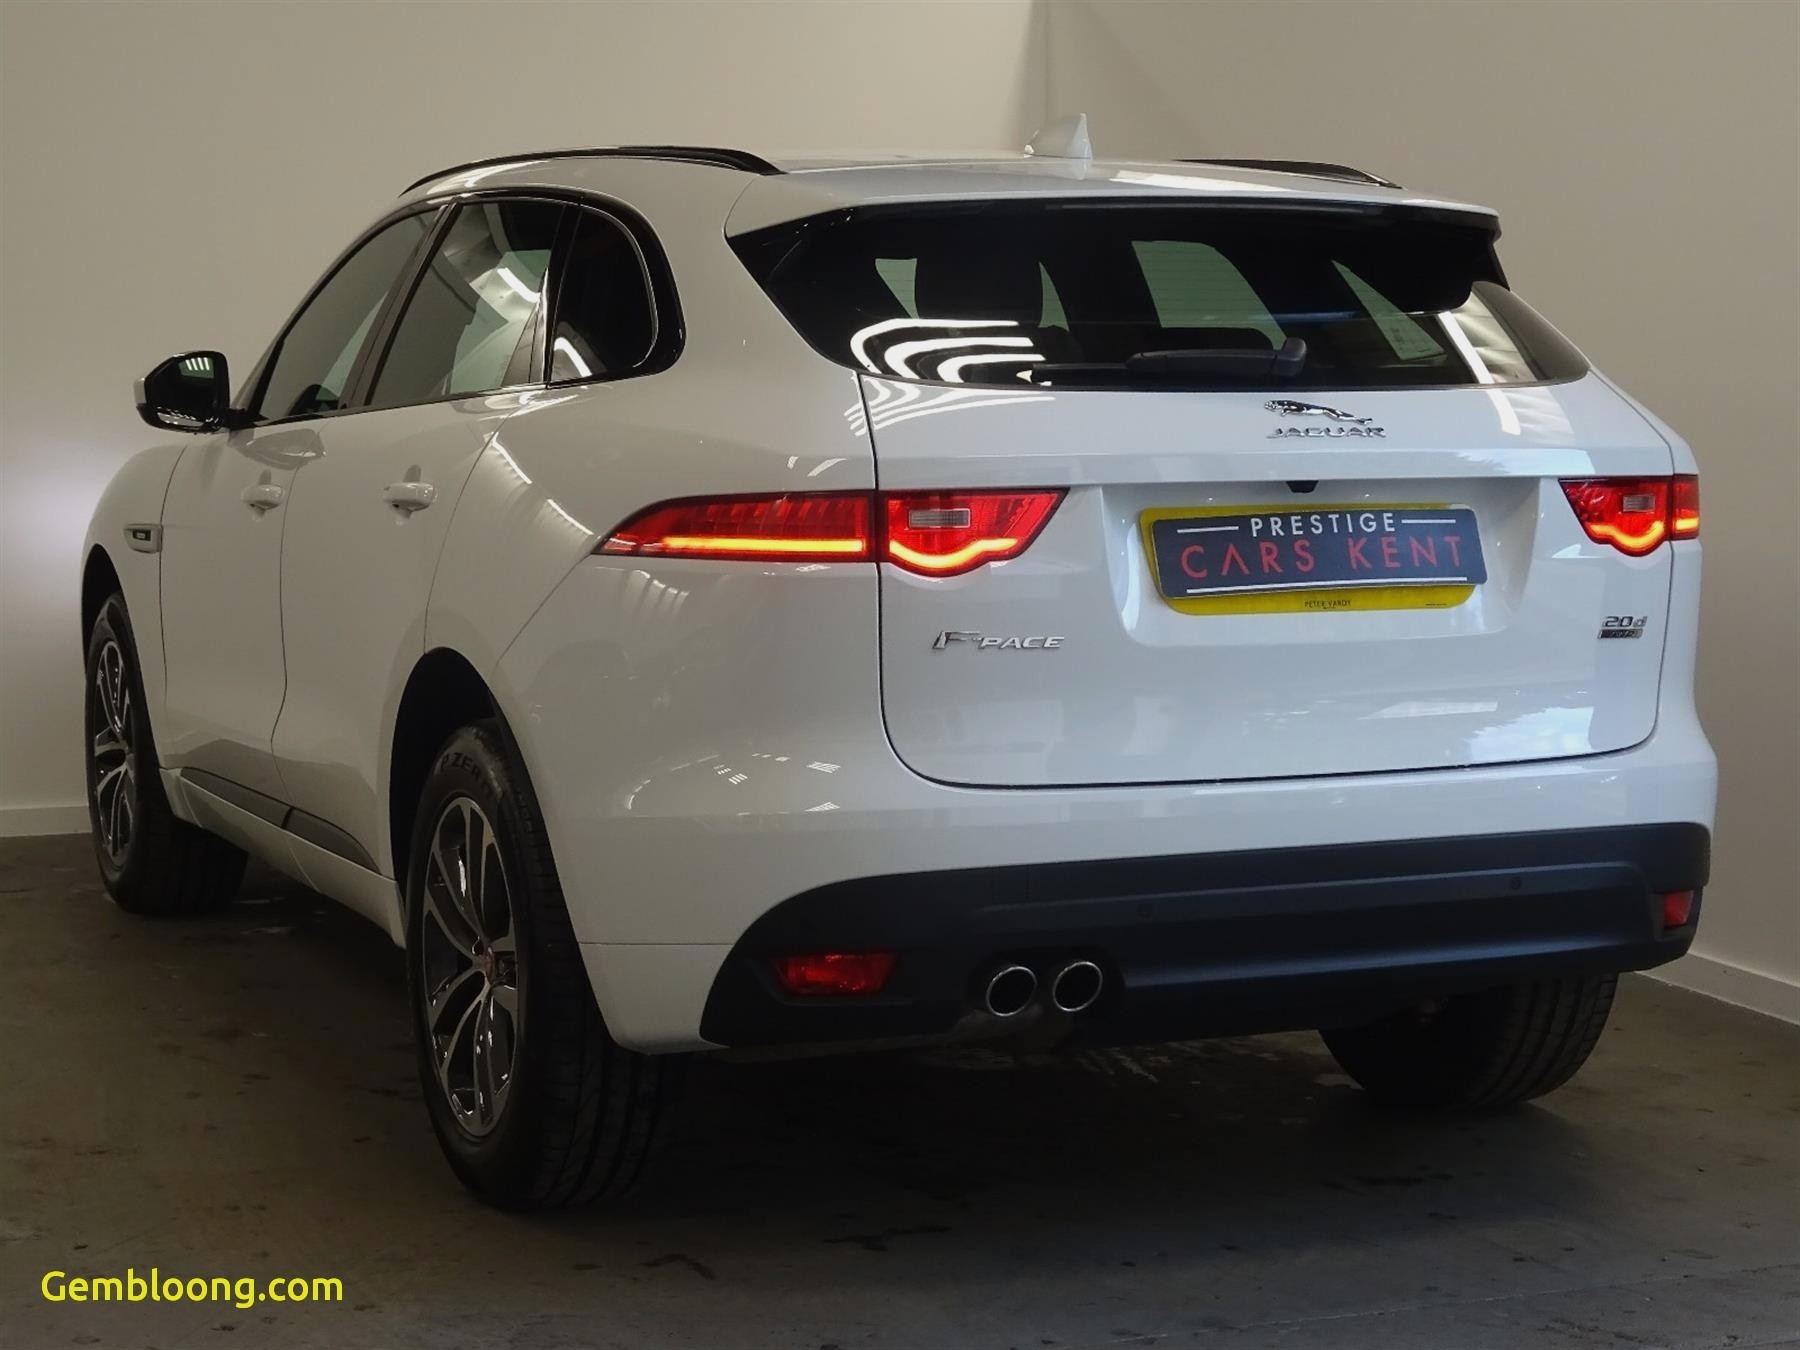 Awd Cars for Sale Near Me Best Of top Awd Cars Stunning Cars Near Me Olx Unique Cars for Sale Near Me